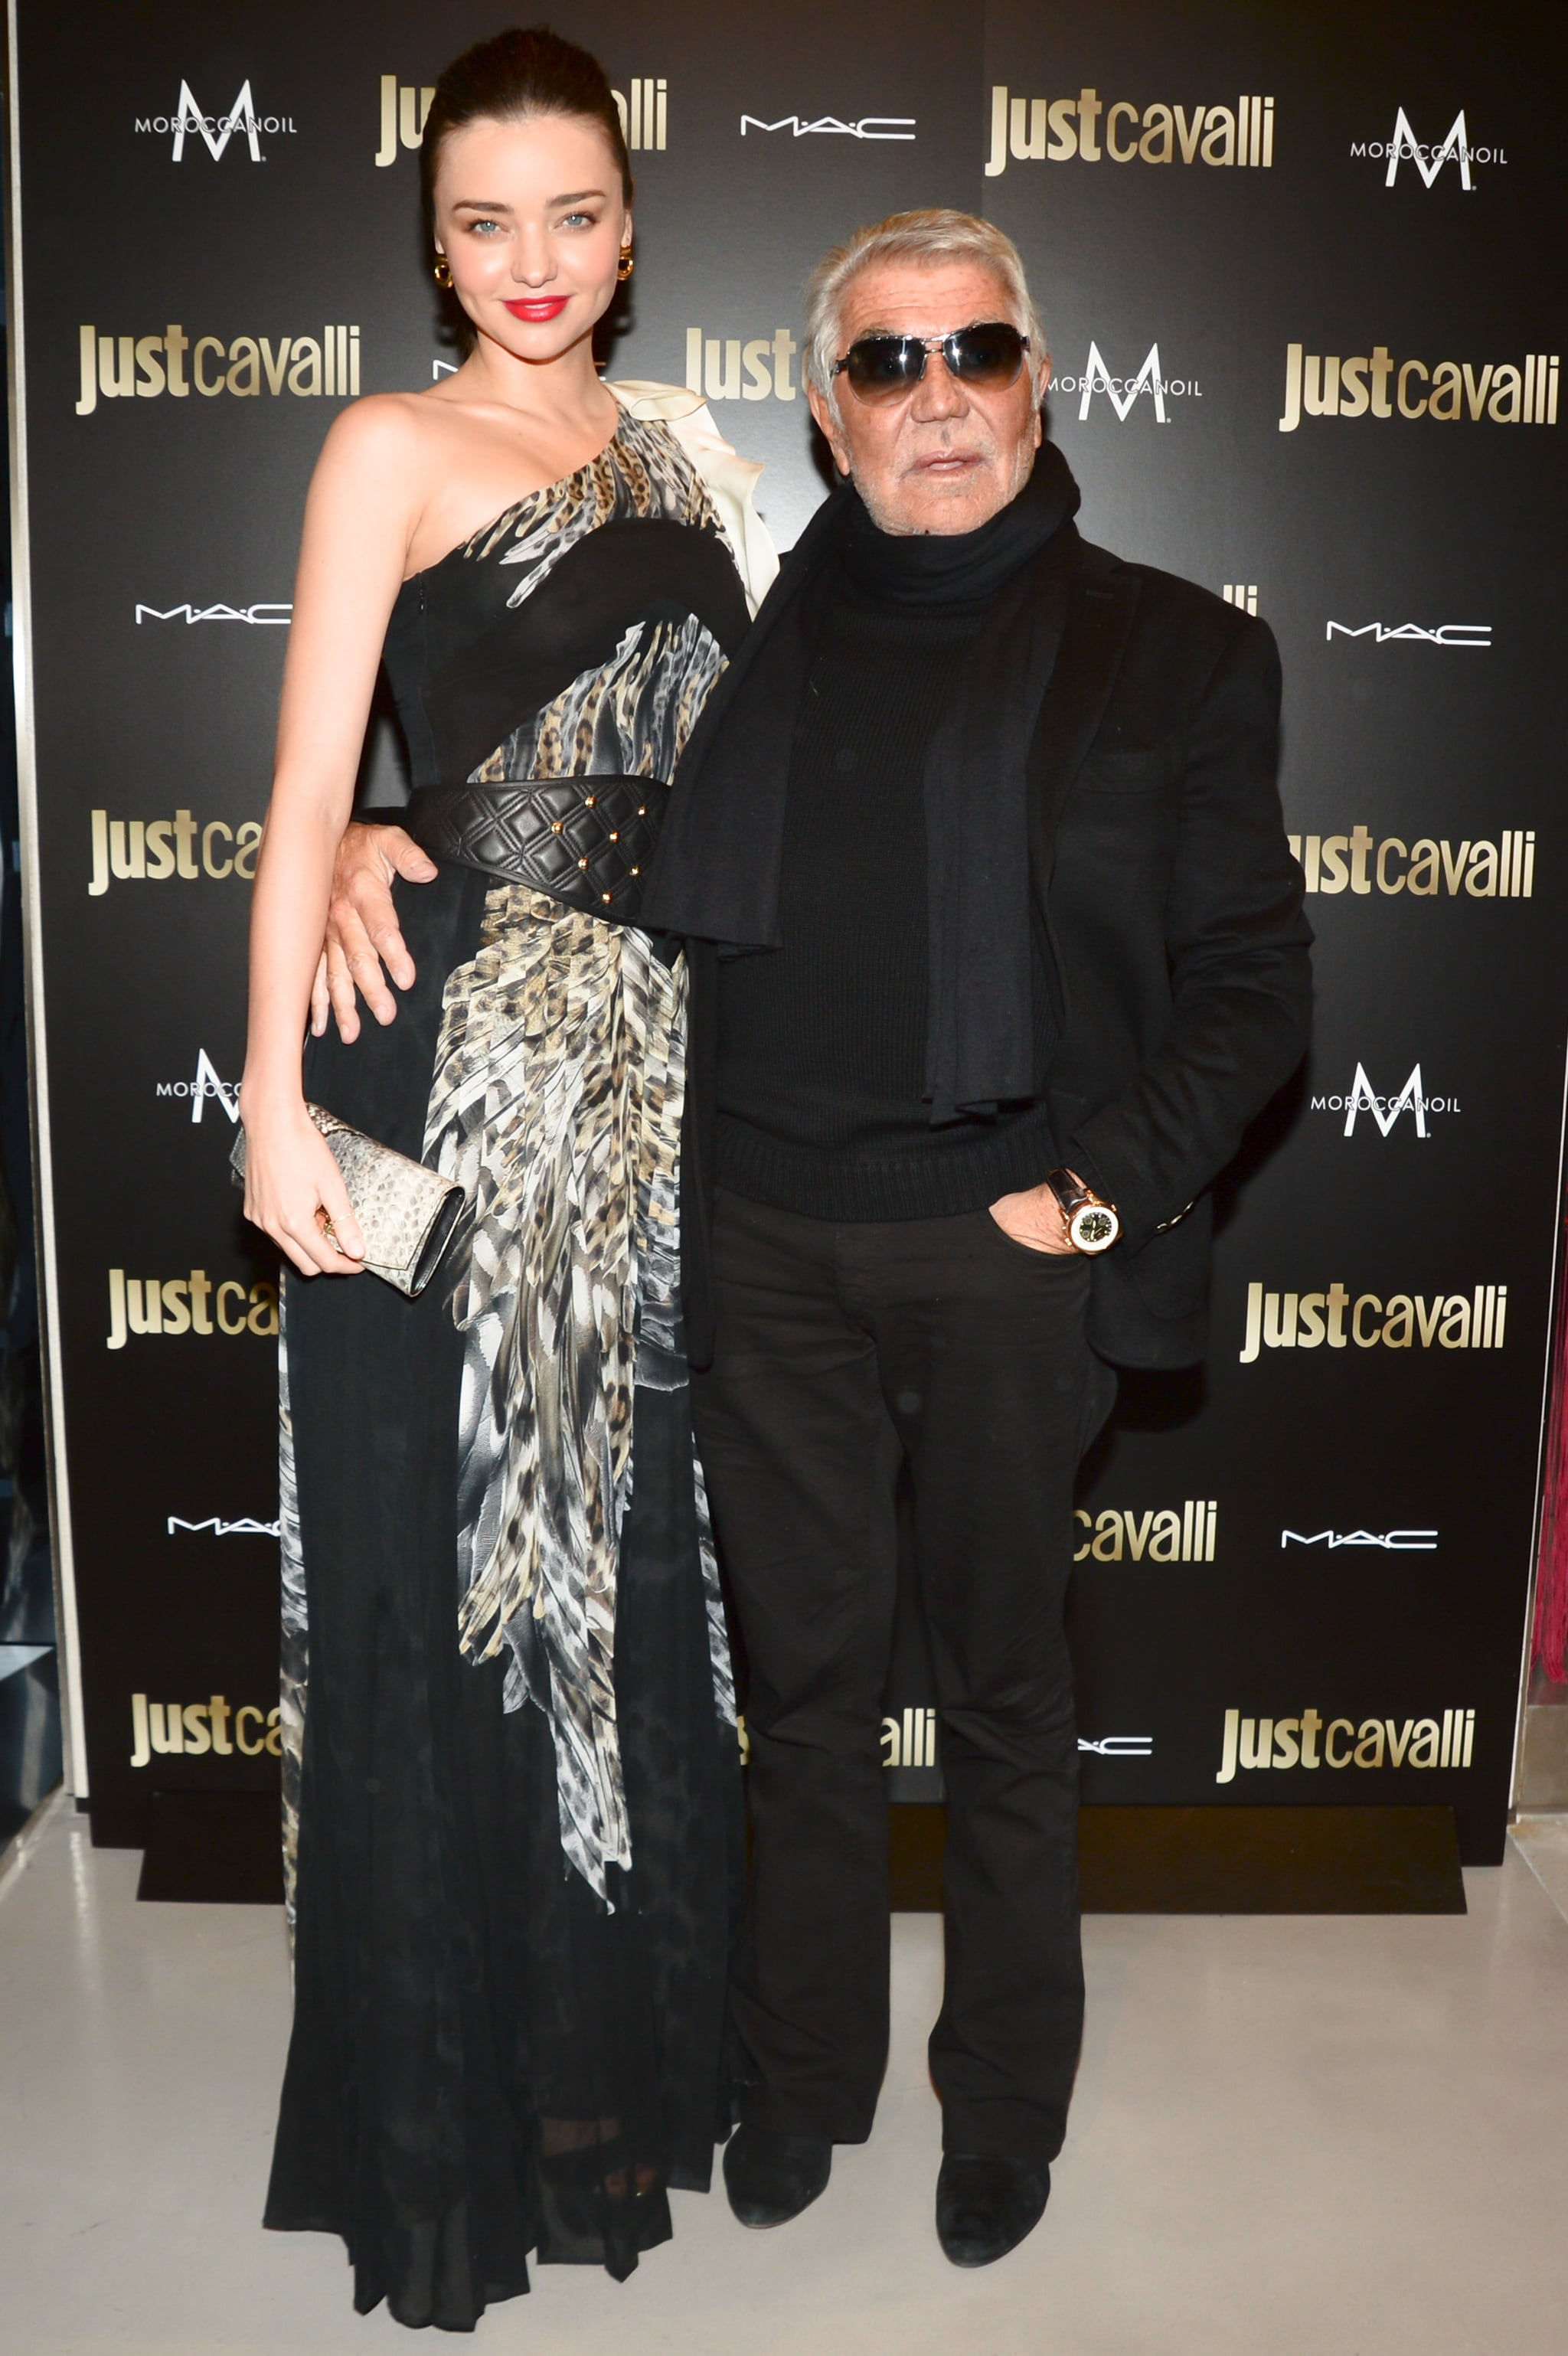 Miranda Kerr and Roberto Cavalli at the Just Cavalli cocktail party.